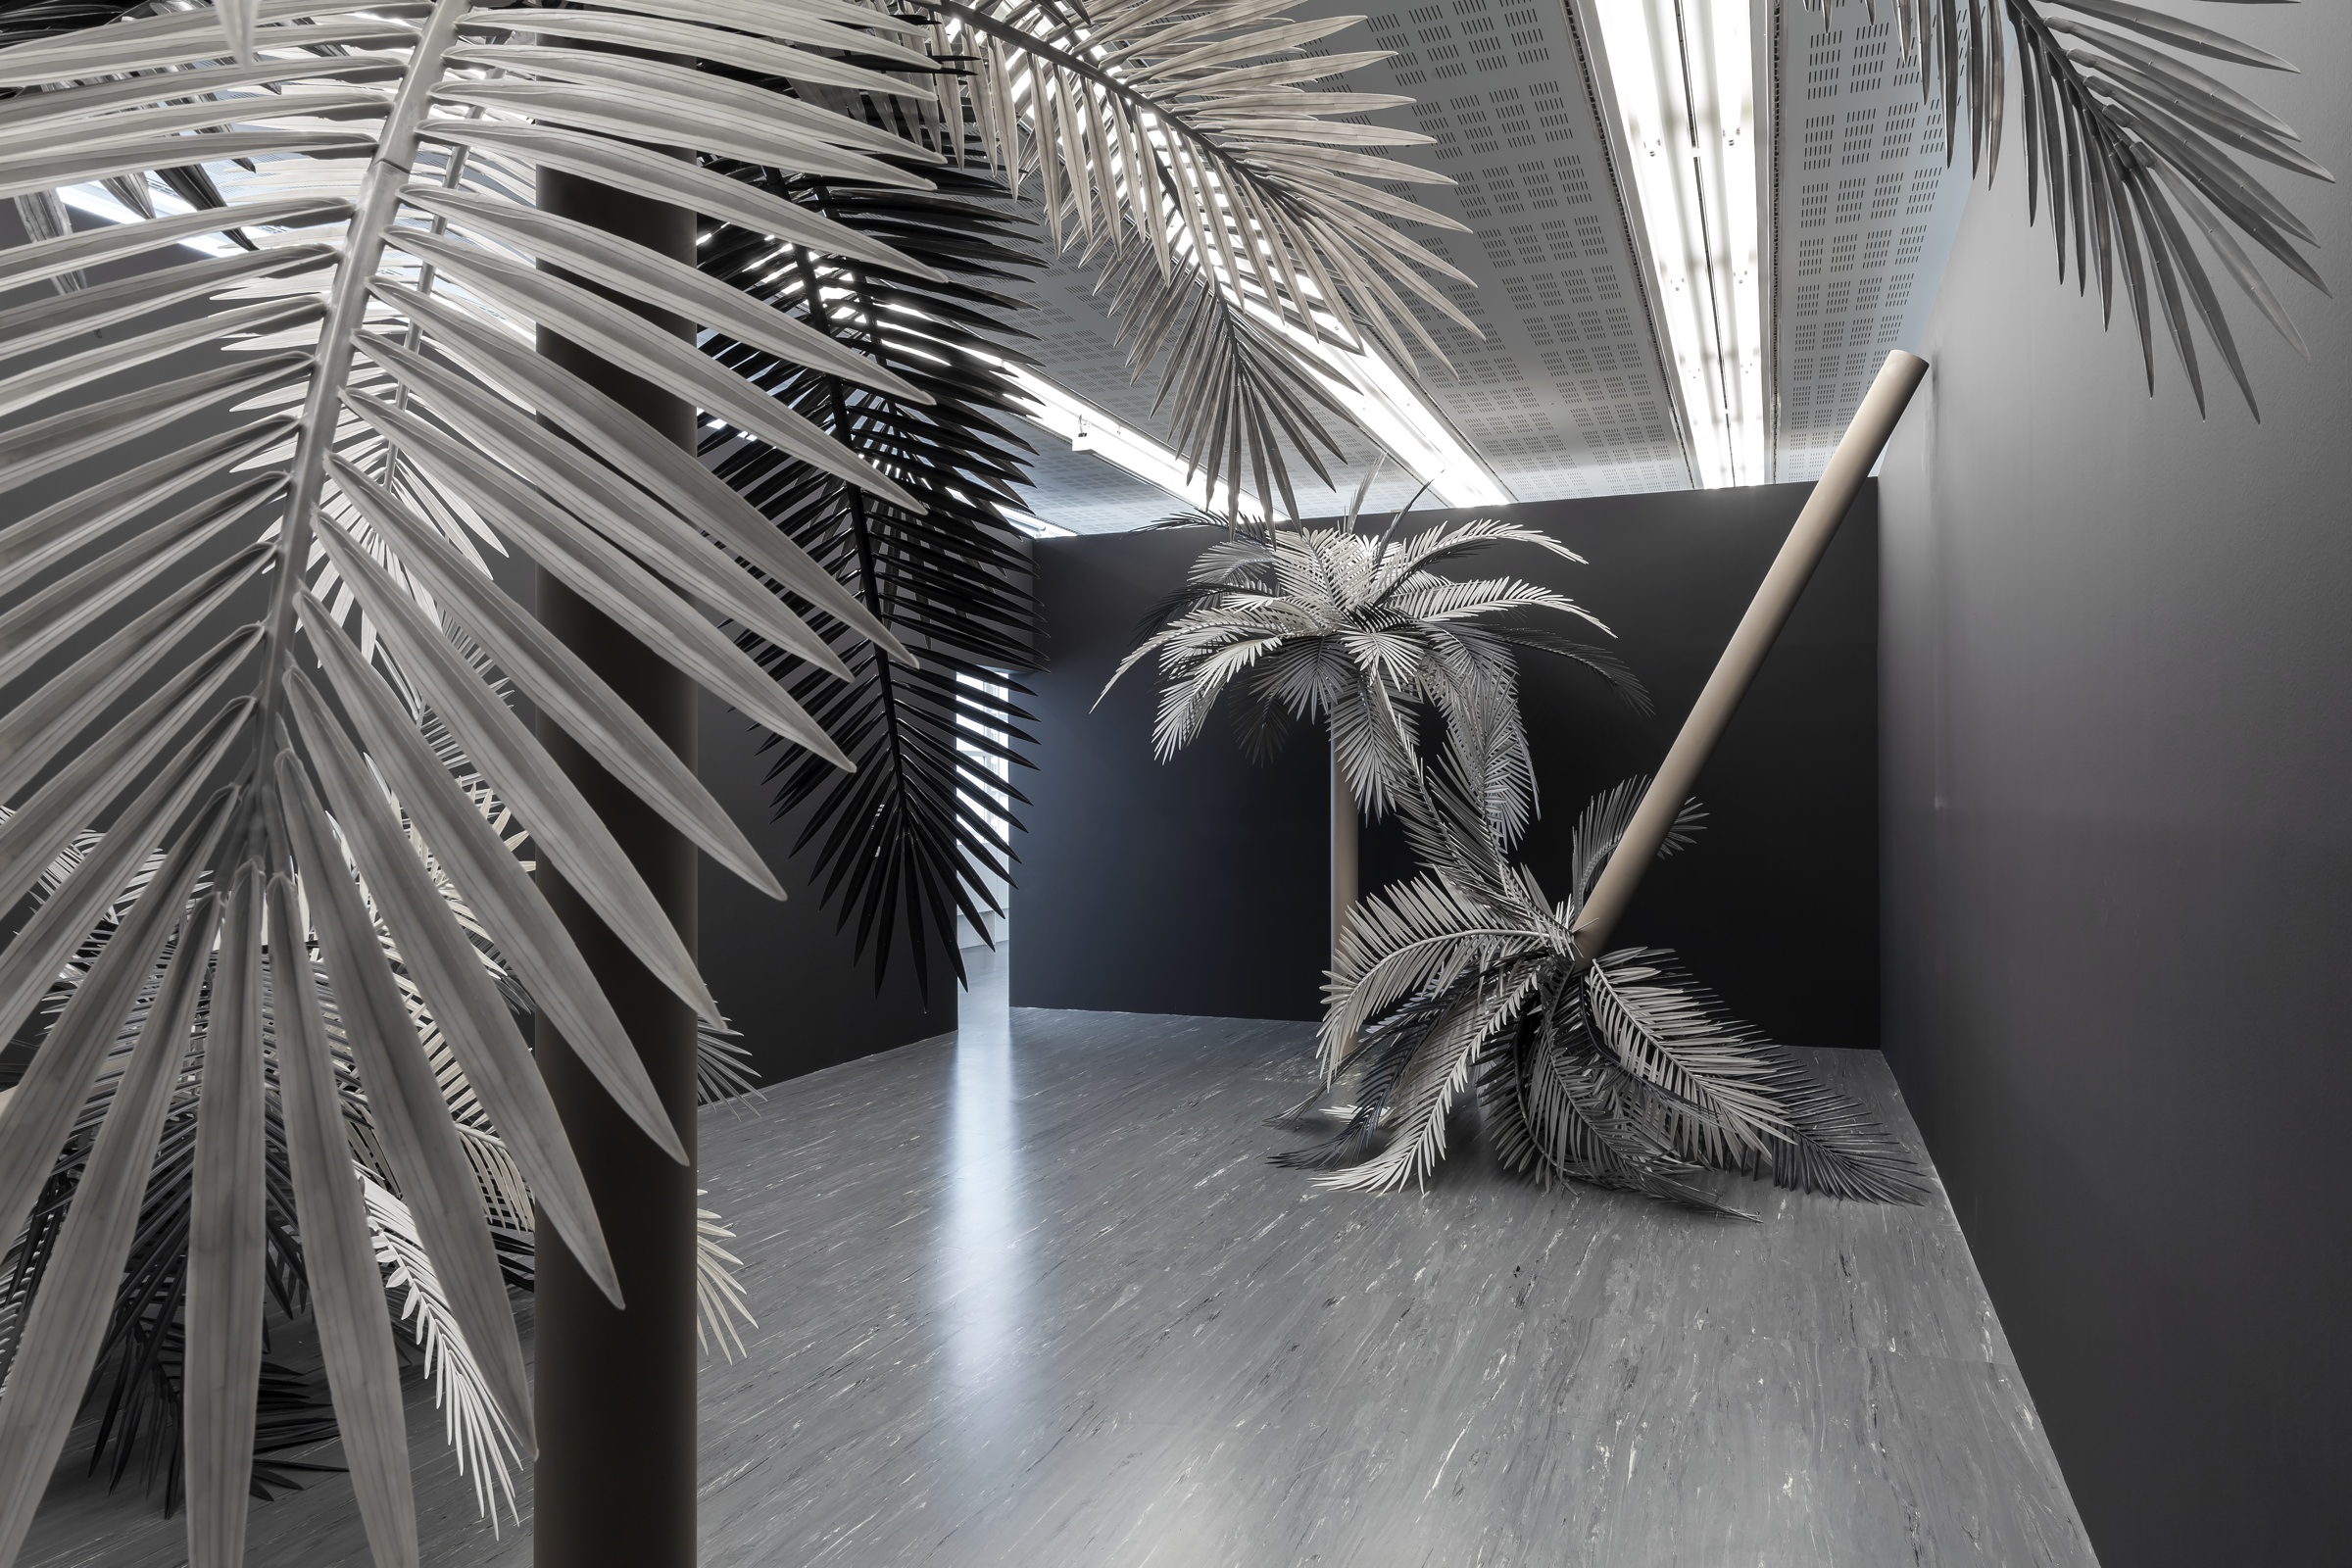 Sarah Ortmeyer,Baden-Baden(KokoI–IV)[2016]. Courtesy of Sarah Ortmeyer and Dvir Gallery, photo : Belvedere    4. IN THE TROPICS OF SARAH ORTMEYER  Sarah Ortmeyer sent me this photo of her exhibition at the Kunsthalle in Baden-Baden(on until August 28th). She developed a project at the Monnaie de Paris [French national mint] where she installed a hundred or so eggs beneath palm trees instead of coconuts… Sarah went to the Städelschule fine arts academy in Frankfurt and now resides in Vienna. Her exhibitions and her installations are always incredibly elegant, both ultra-minimalist and very funny. She might be a conceptual artist but she remains equally fascinated by pop culture. I remember her book about Riri, Fifi and Loulou, whose names were translated into every language, and her obsession with Shiloh Jolie-Pitt, the tomboy daughter of Brangelina. Sarah also worked on Kant and the way the philosopher would dress according to the environment in which he found himself. That resulted in Kant Elegant, a series of sculptures featuring big brand clothes draped carefully over plants.   www.kunsthalle-baden-baden.de